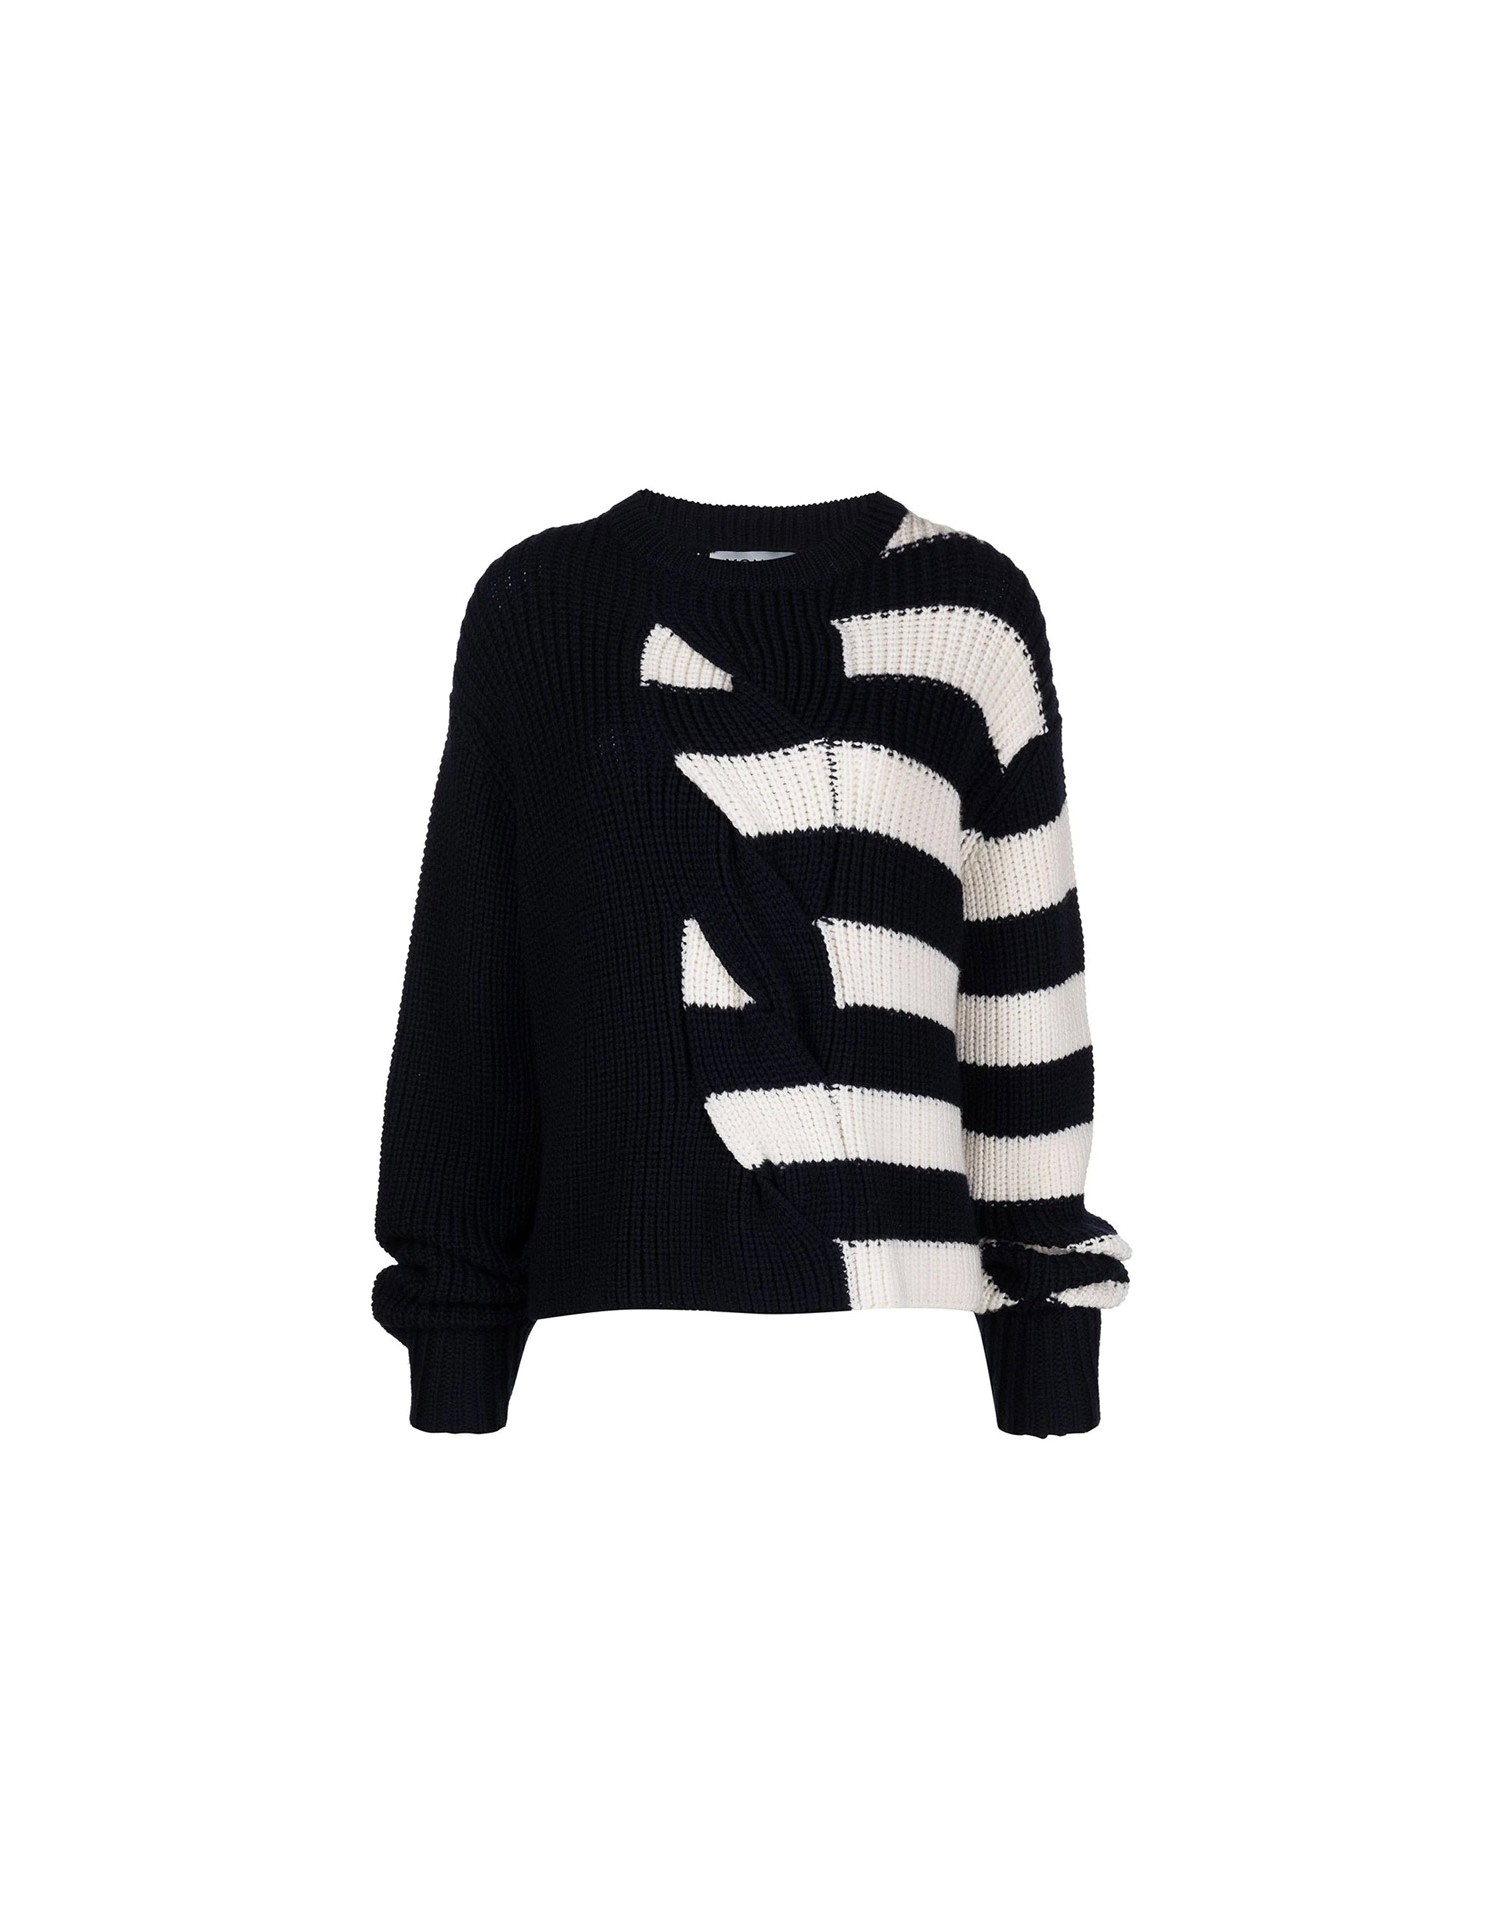 MONSE Half Stripe Cable Sweater in Midnight and Ivory Flat Front